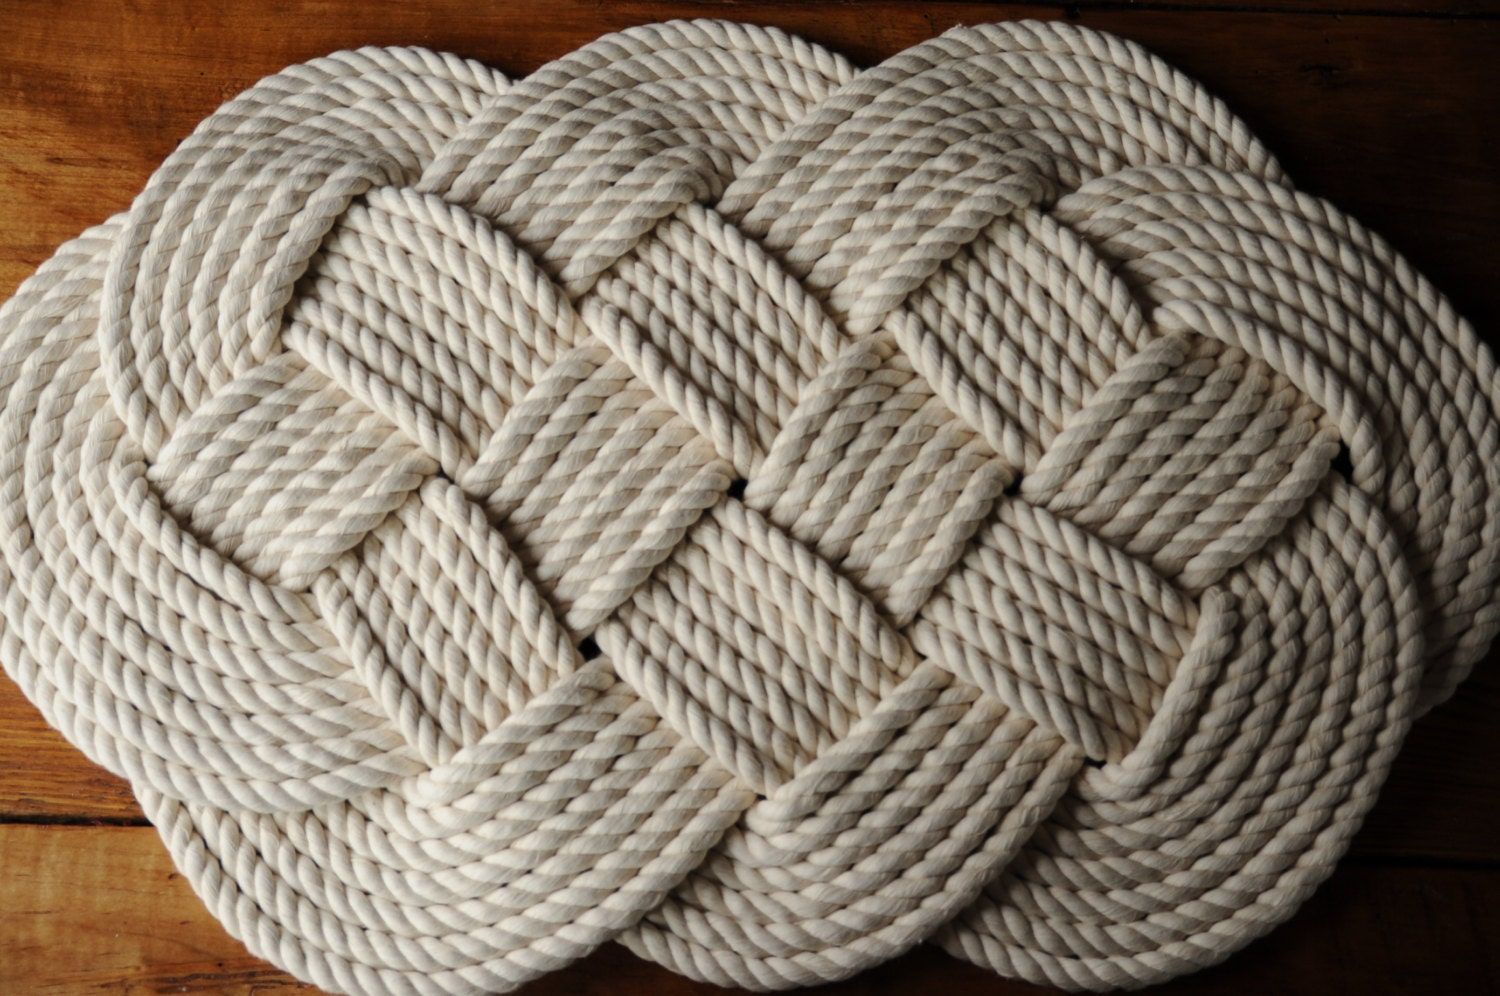 Nautical bath mat nautical decor cotton rope rug for Rope bath mat